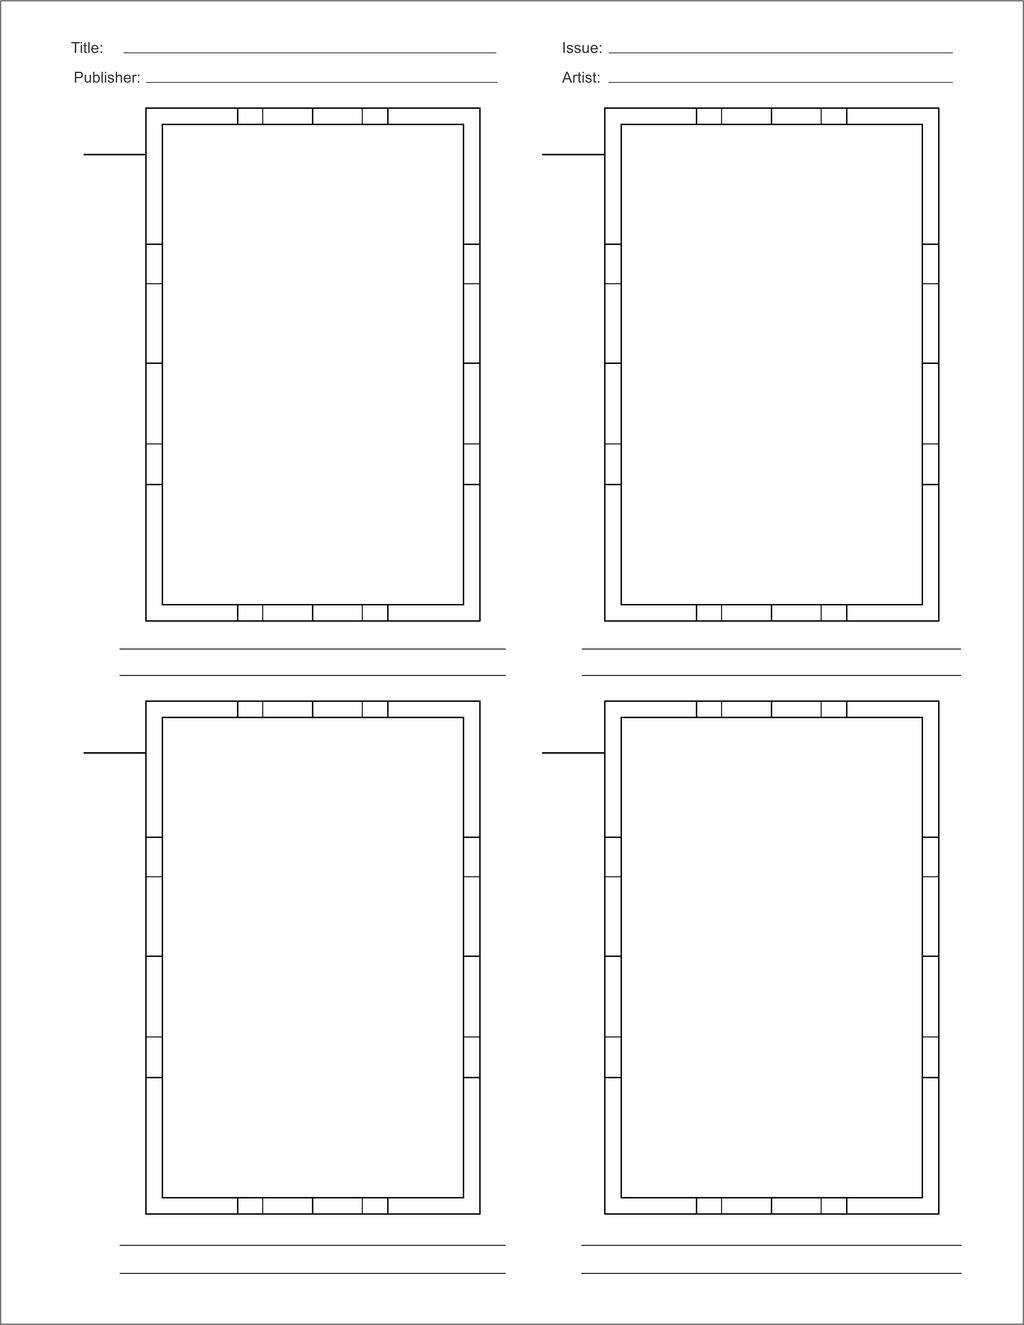 comic book layout template by brianatkins on deviantart. Black Bedroom Furniture Sets. Home Design Ideas